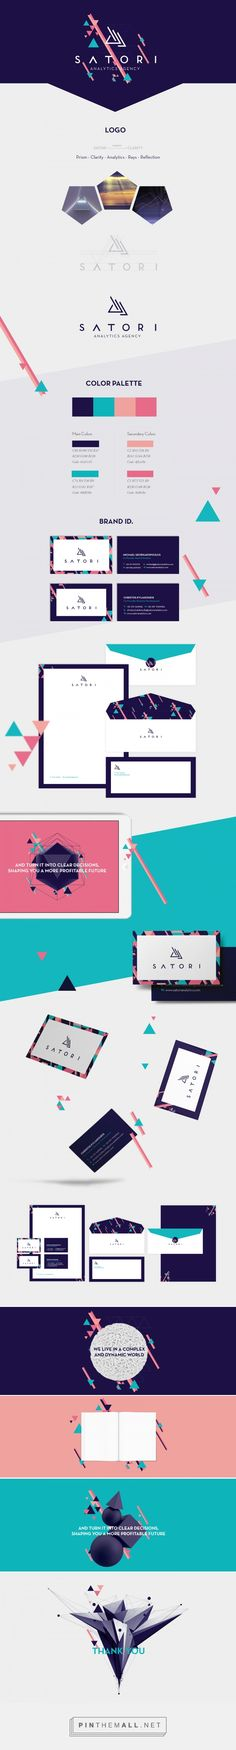 Satori Analytics Agency Branding on Behance | Fivestar Branding – Design and…